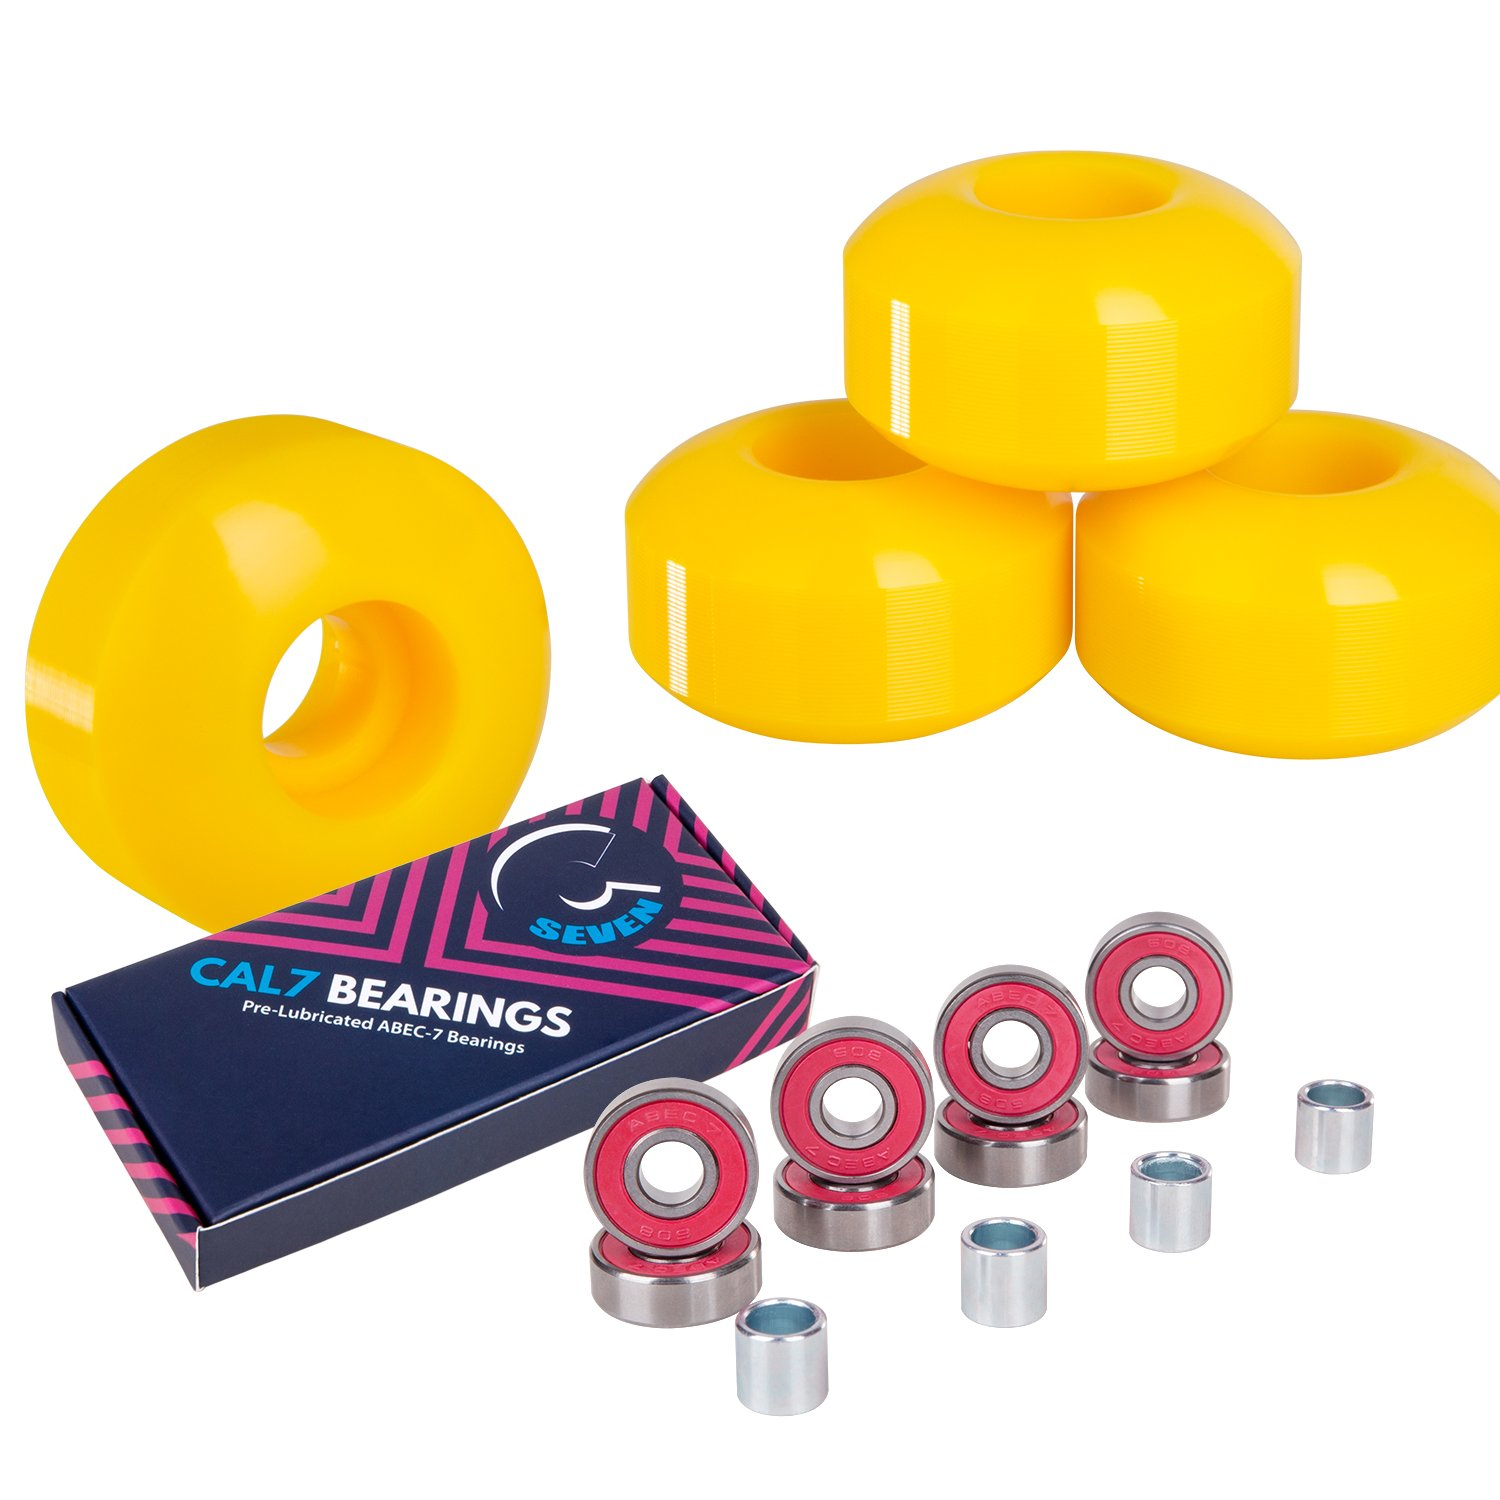 Cal 7 Skateboard Wheels and Bearings | 52mm 99A Wheel Set Combo (Yellow) by Cal 7